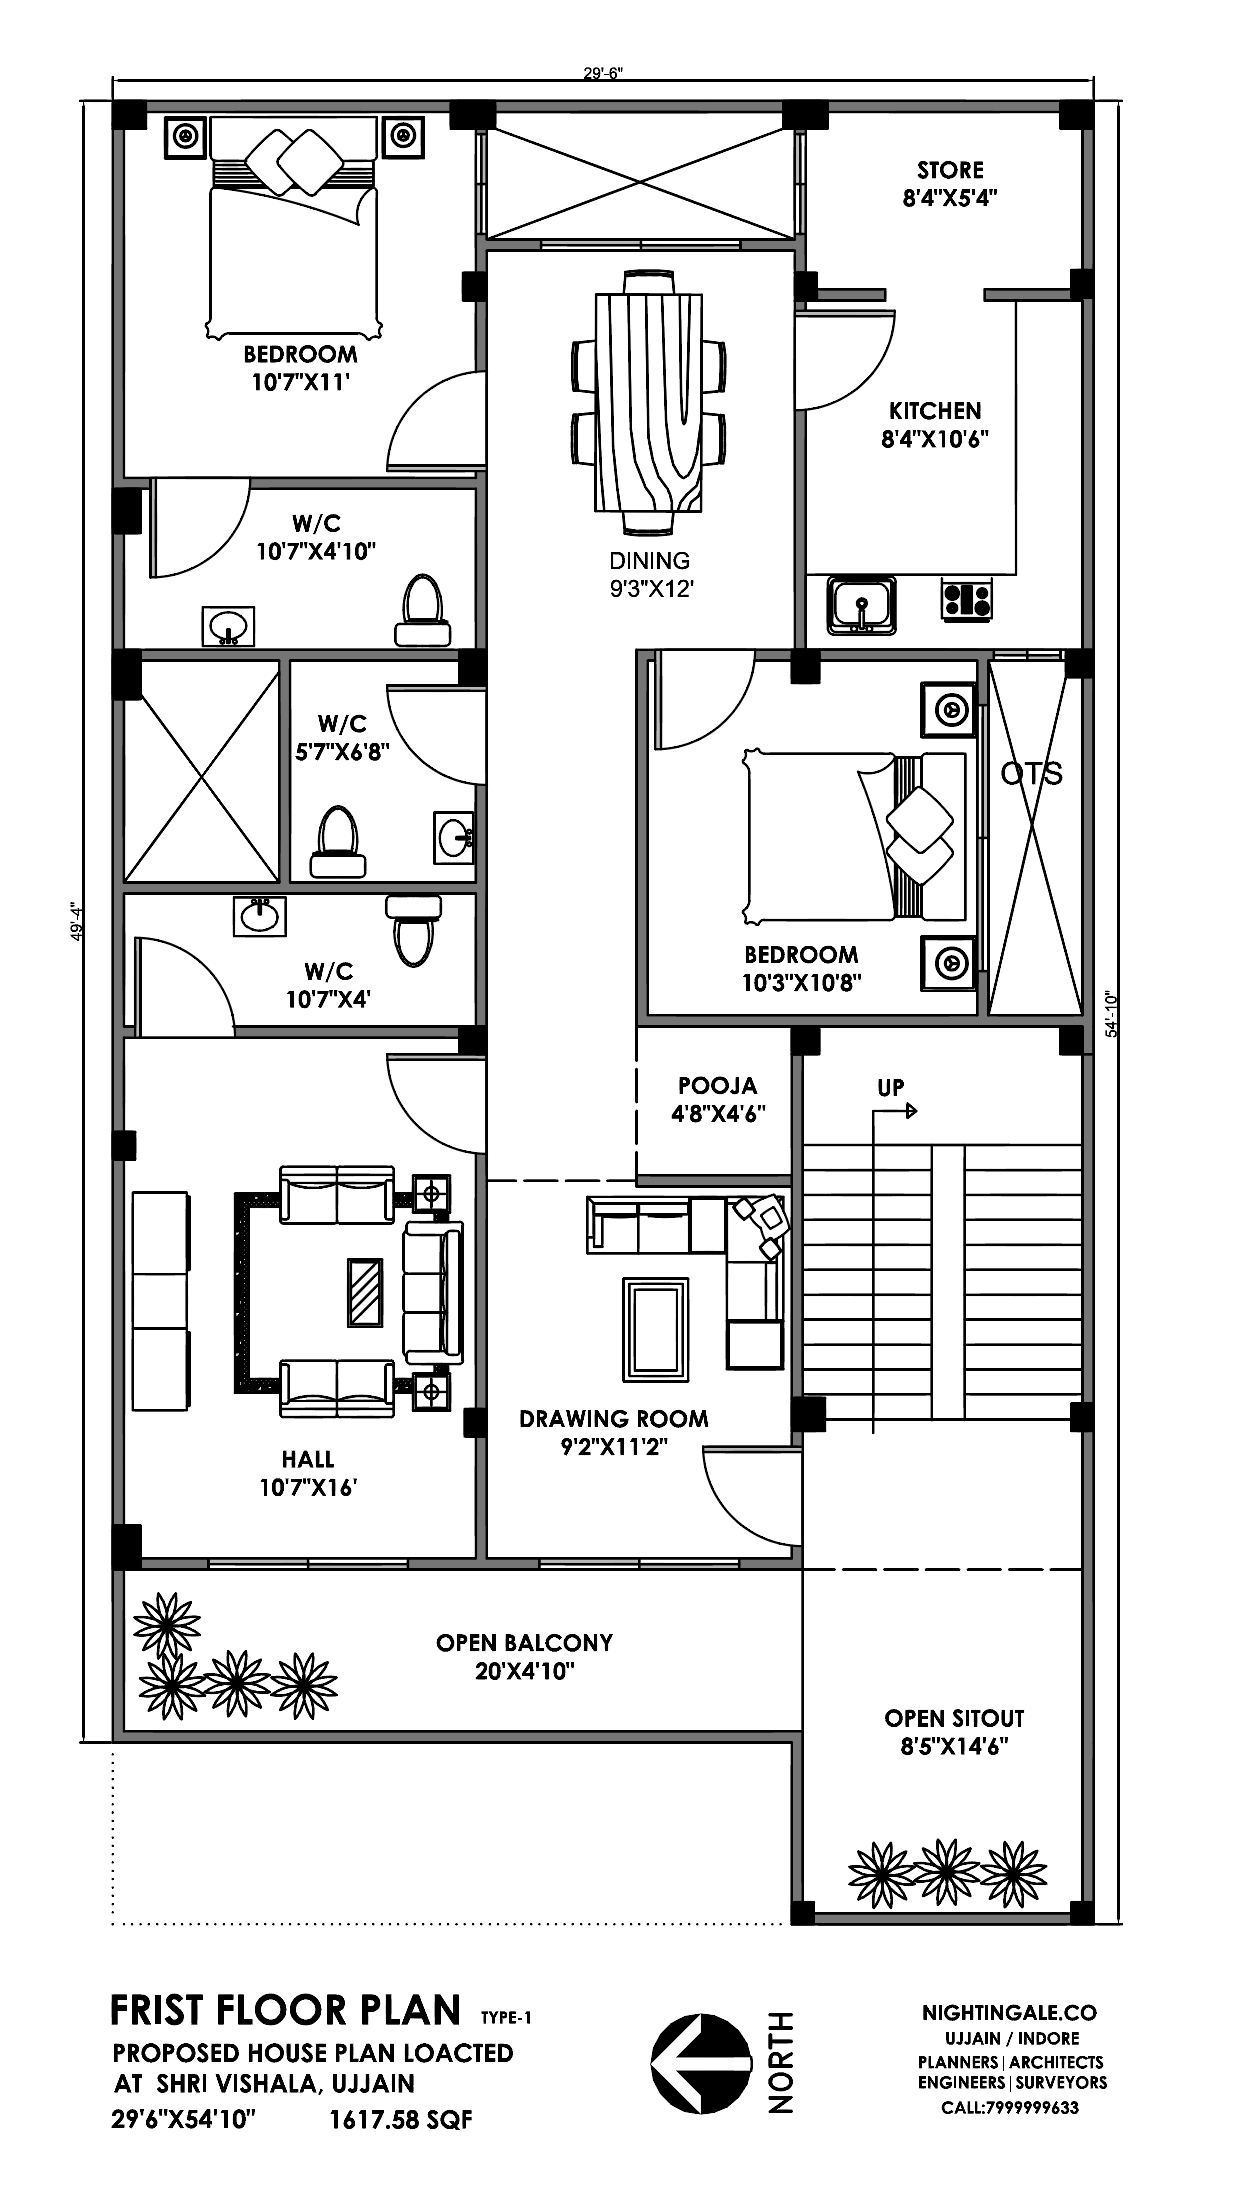 30x50 3BHK House Plan 1500sqft | plan s on 40 x 40 house floor plans, metal house floor plans, 40 x 50 house floor plans, 30 x 60 house floor plans, metal barns texas house plans, 20 by 40 house plans, 30x30 cabin floor plans, 40 x 30 house floor plans, 40x40 home plans, 30 x 80 house plans, 24 x 60 house floor plans, barndominium house plans, 28 x 36 house plans, 24 x 40 house floor plans, 34 x 60 house floor plans, metal barn home plans, 28 x 48 floor plans, 50x50 house plans, 28 x 44 house plans, 20 x 40 house floor plans,